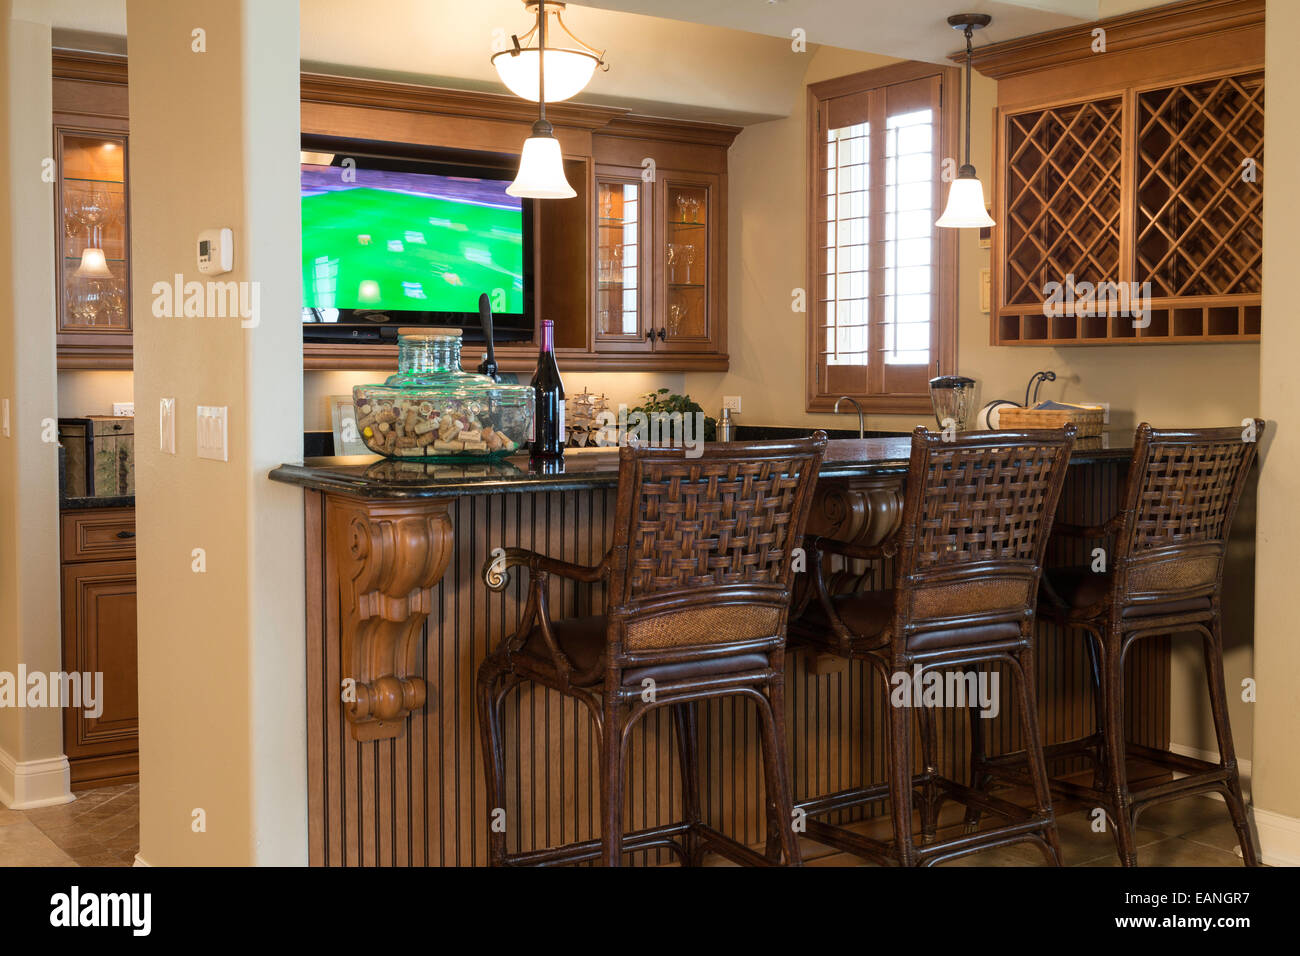 Showcase Residential Wet Bar with TV, House Interior, USA Stock ...